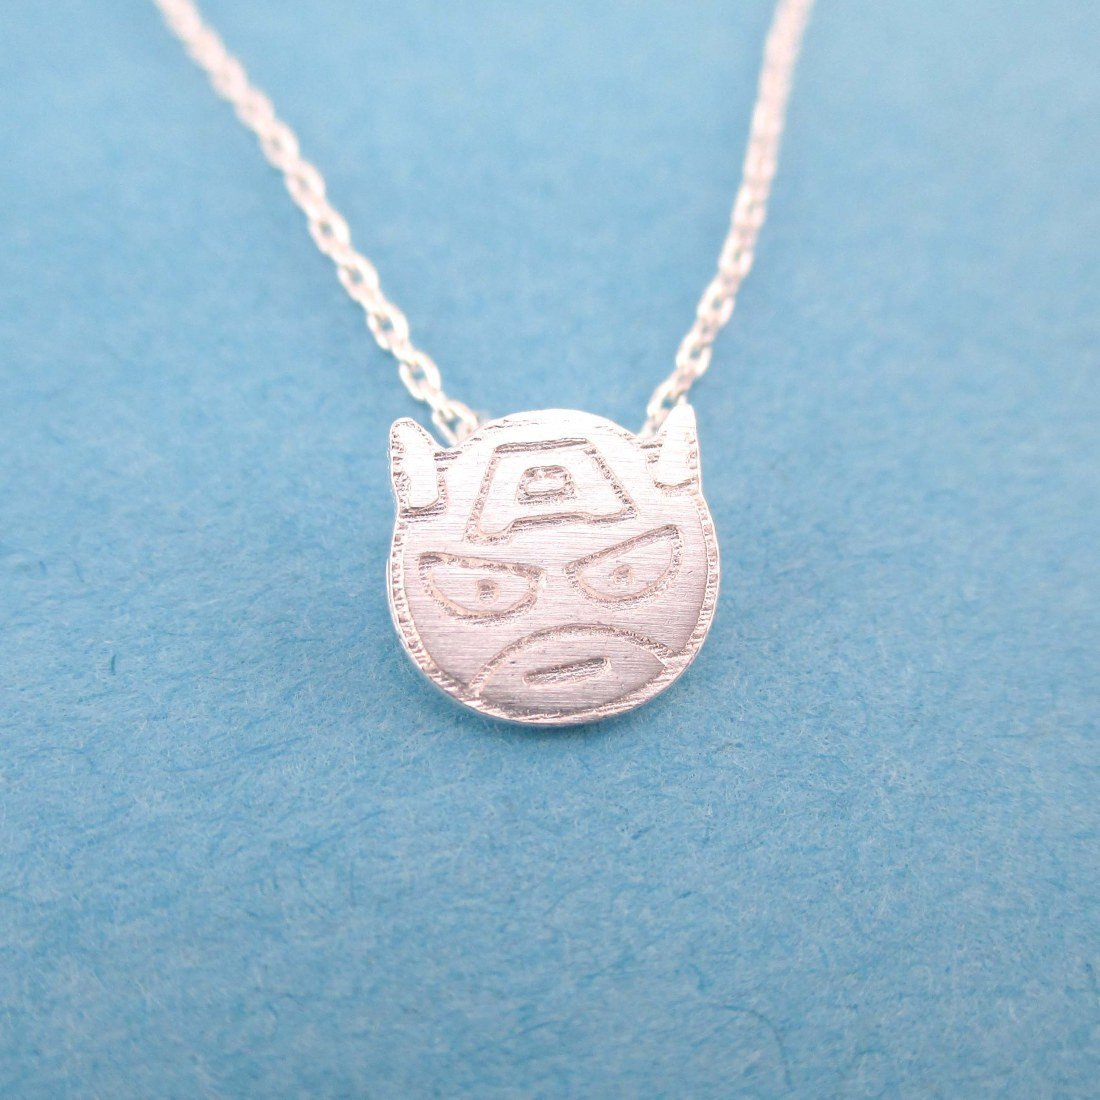 Chibi Captain America Shaped Charm Necklace in Silver | DOTOLY